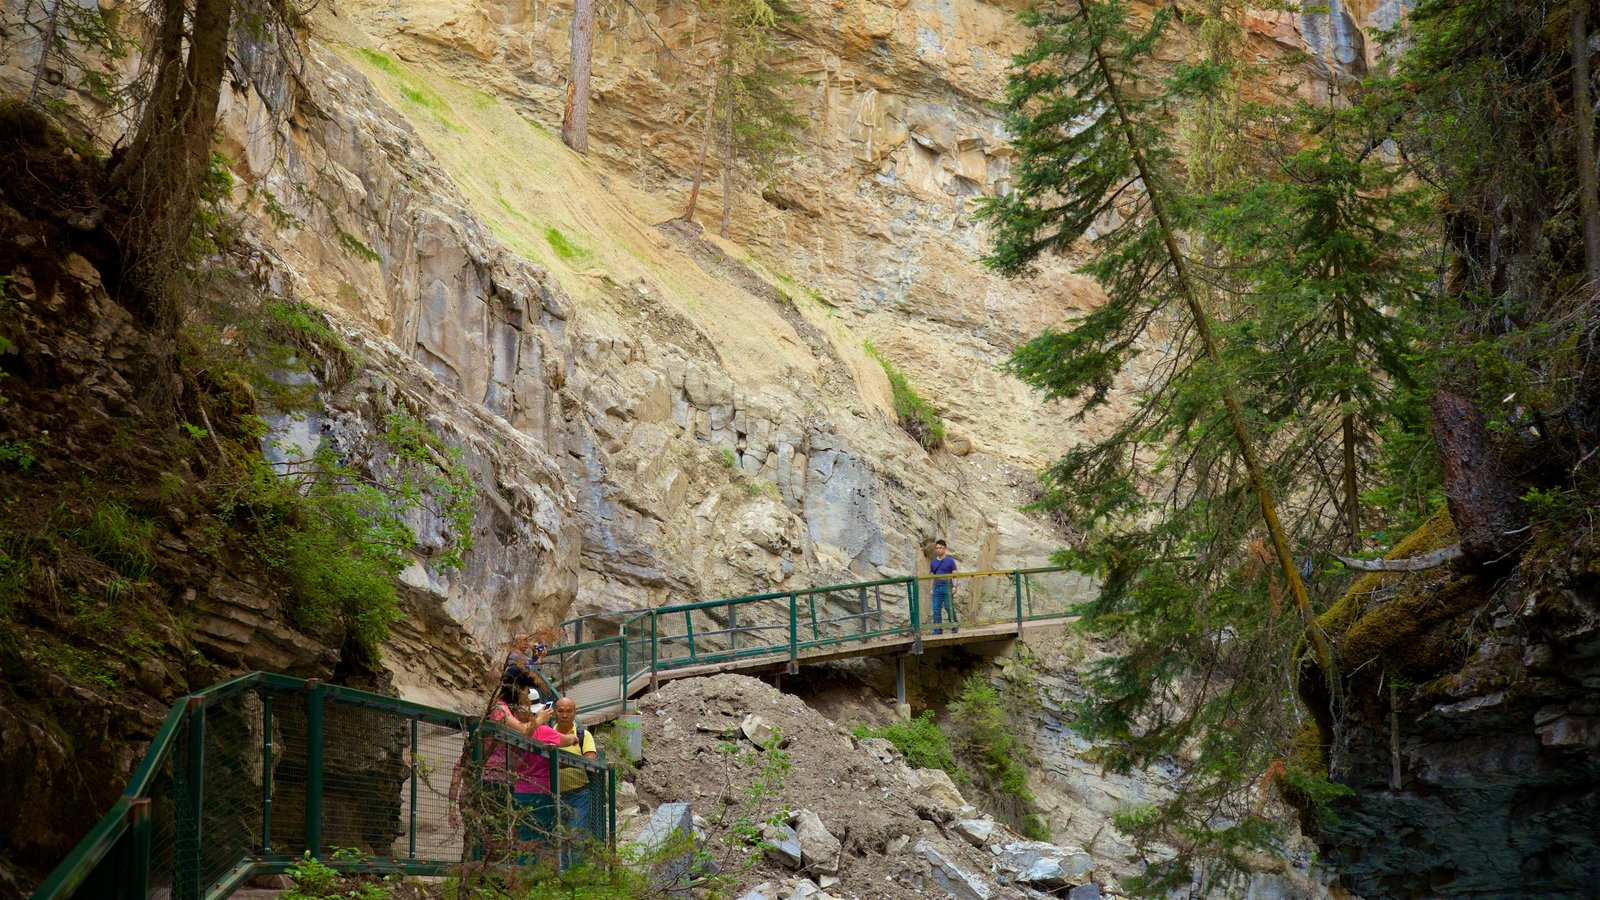 Johnston Canyon featuring a gorge or canyon as well as a small group of people